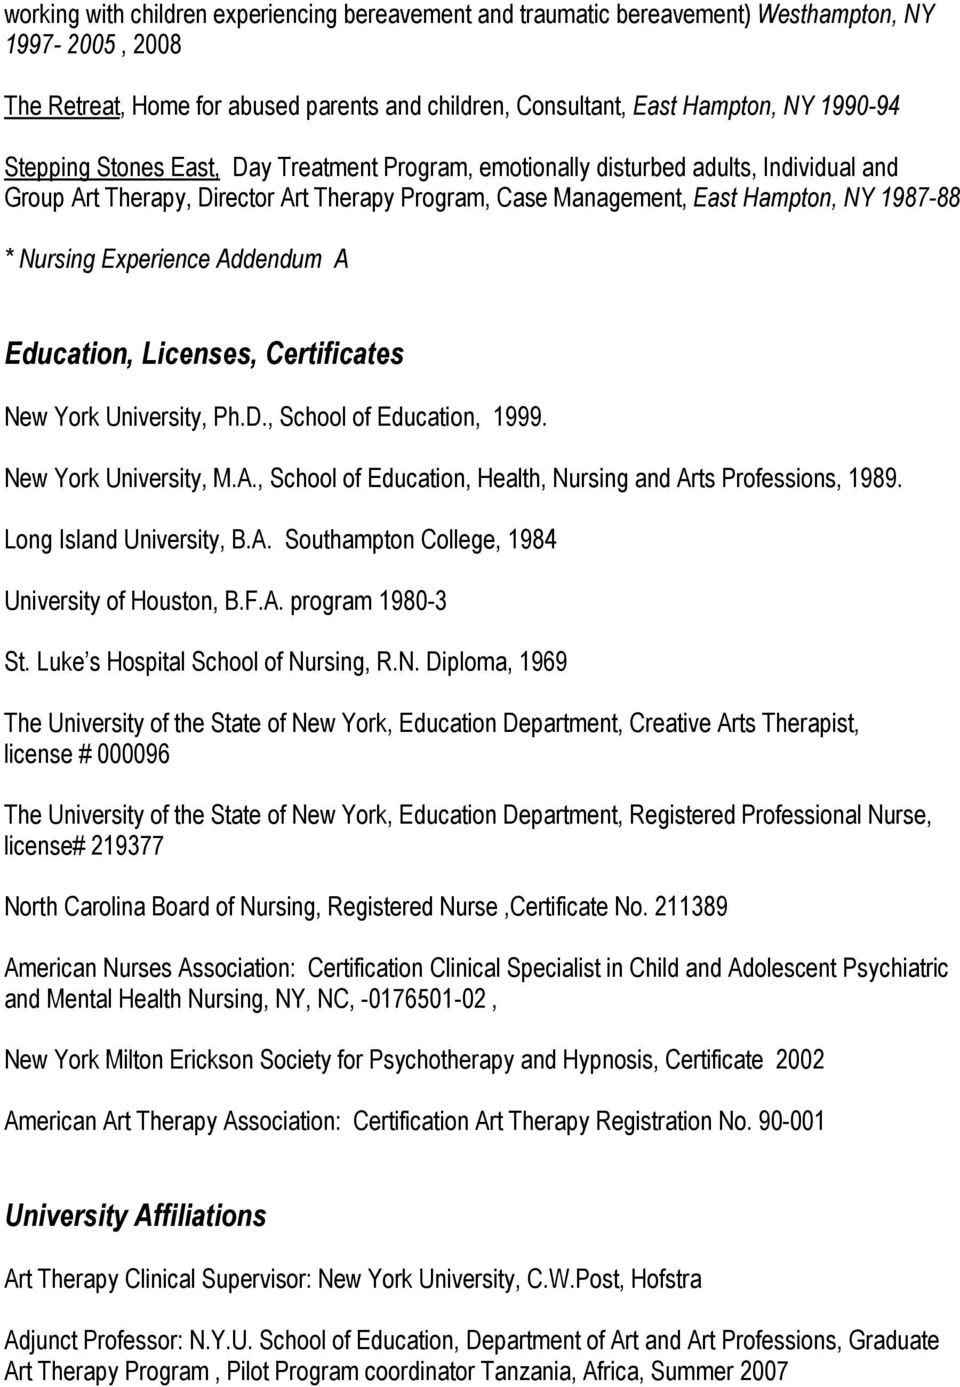 Experience Addendum A Education, Licenses, Certificates New York University, Ph.D., School of Education, 1999. New York University, M.A., School of Education, Health, Nursing and Arts Professions, 1989.